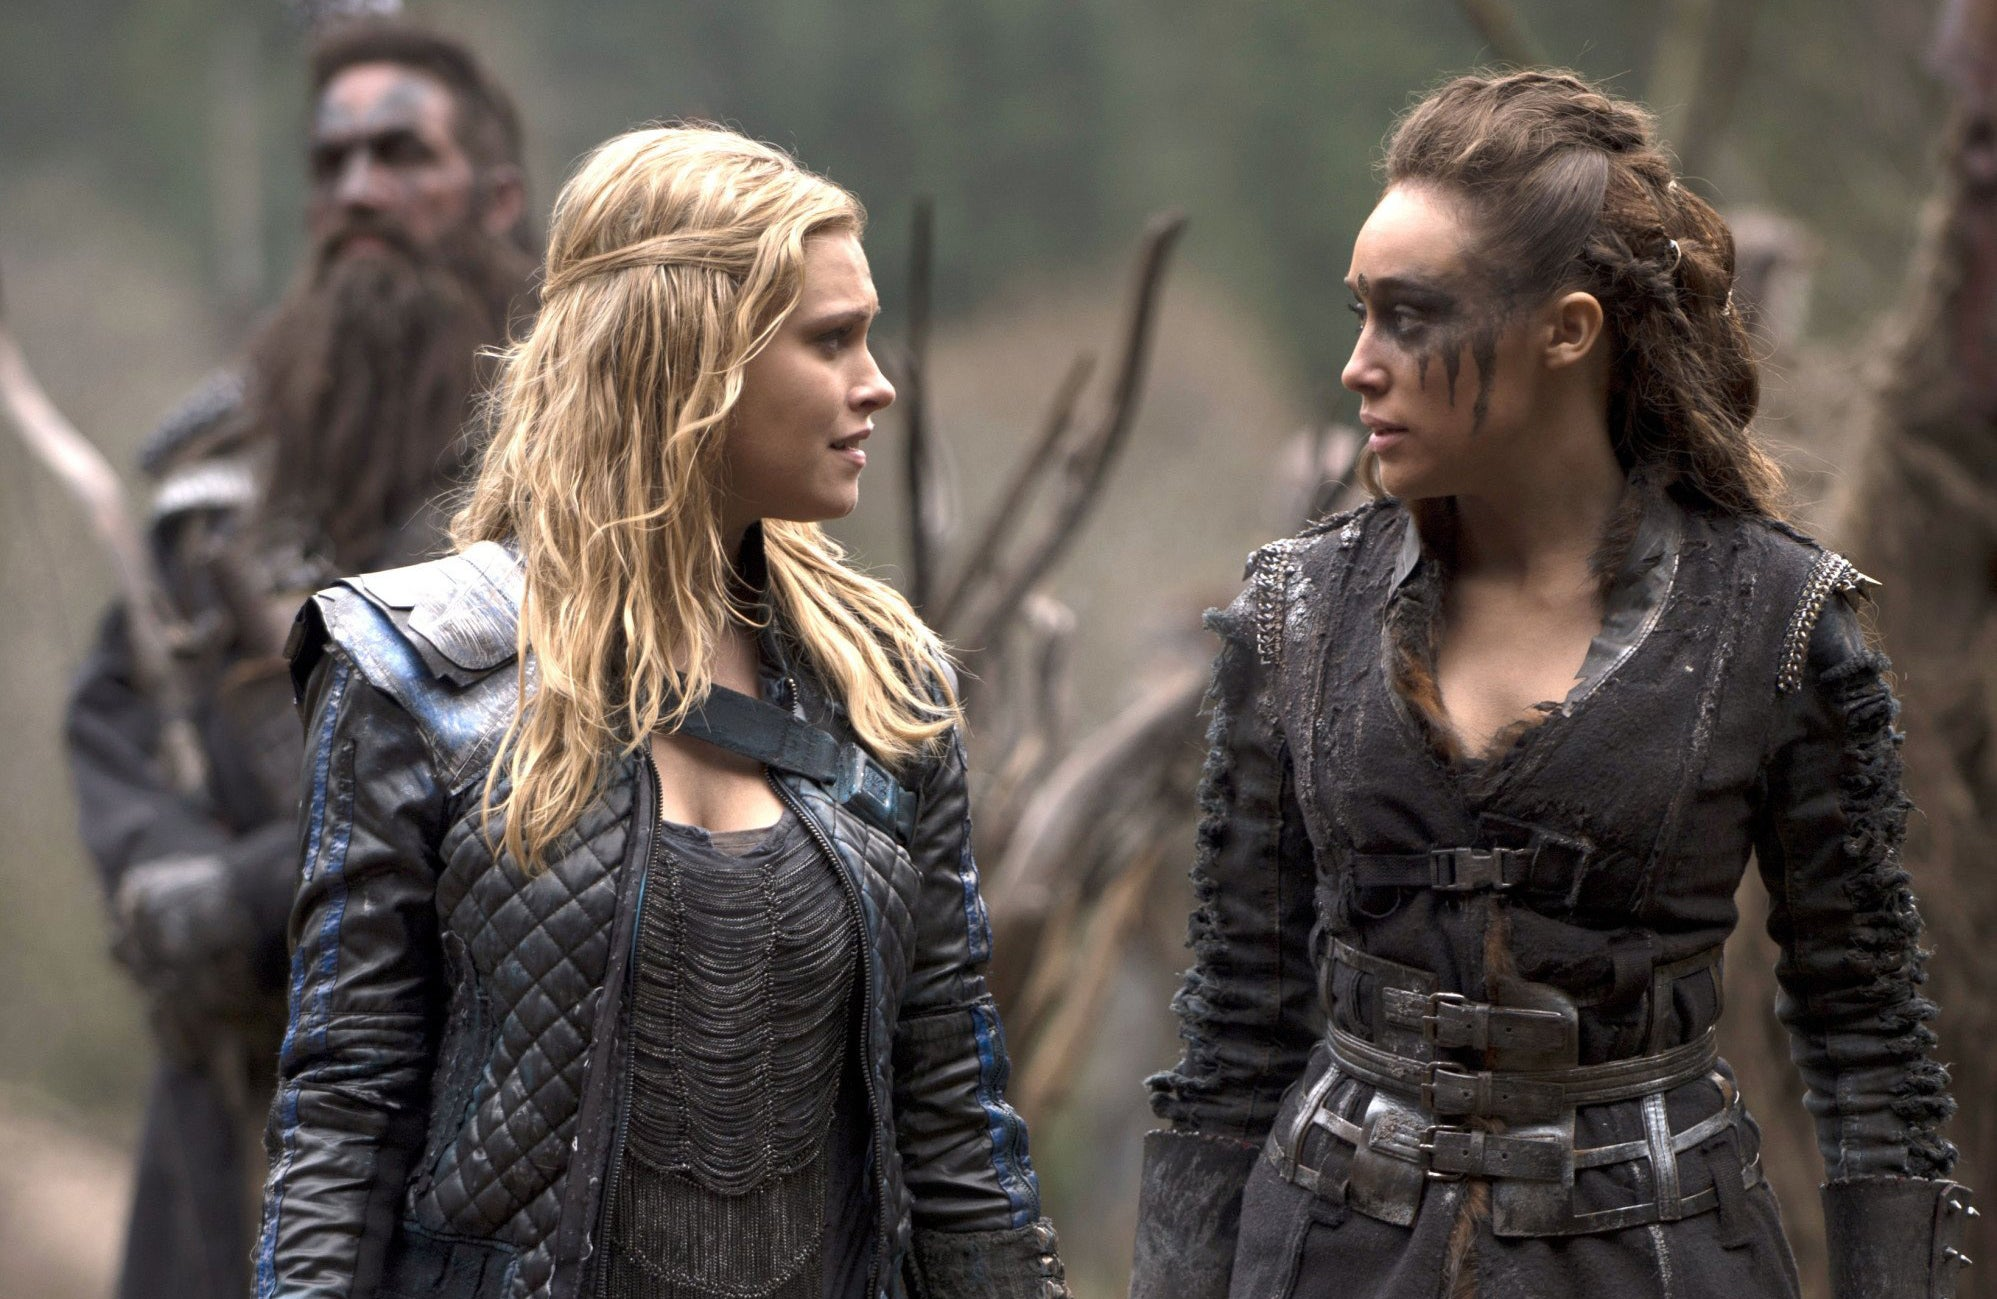 Lexa and Clarke look at each other